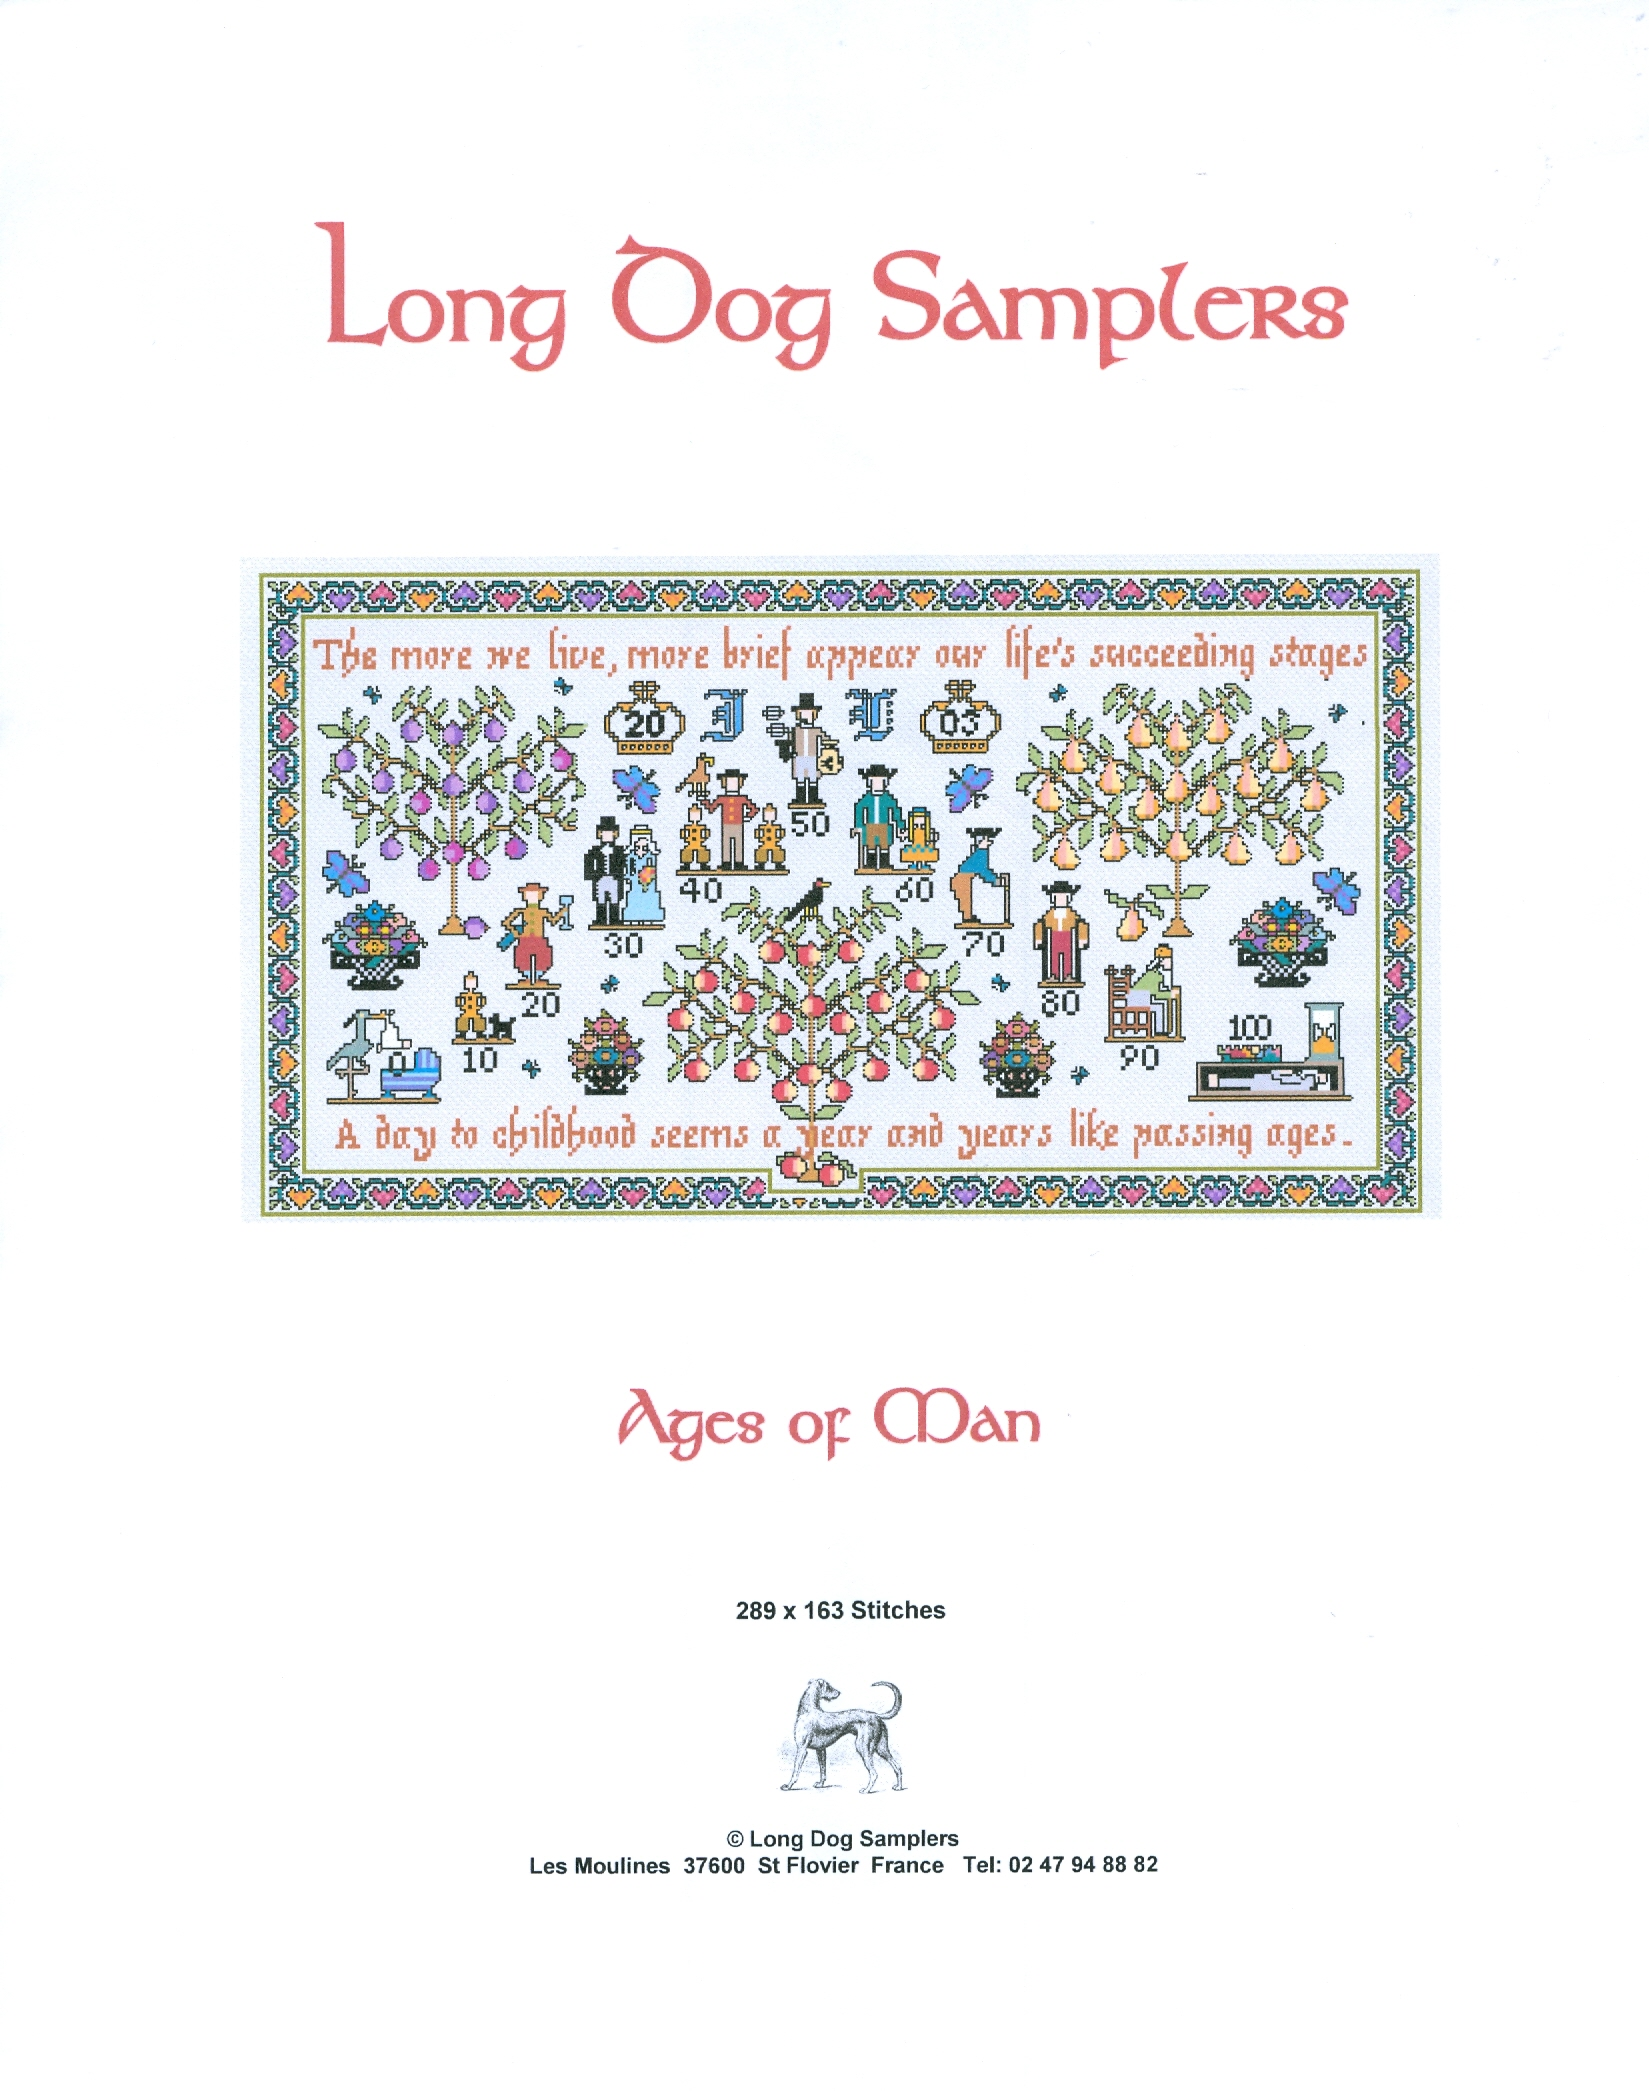 Long Dog Samplers : 3 Stitches, Your One Stop Shop!